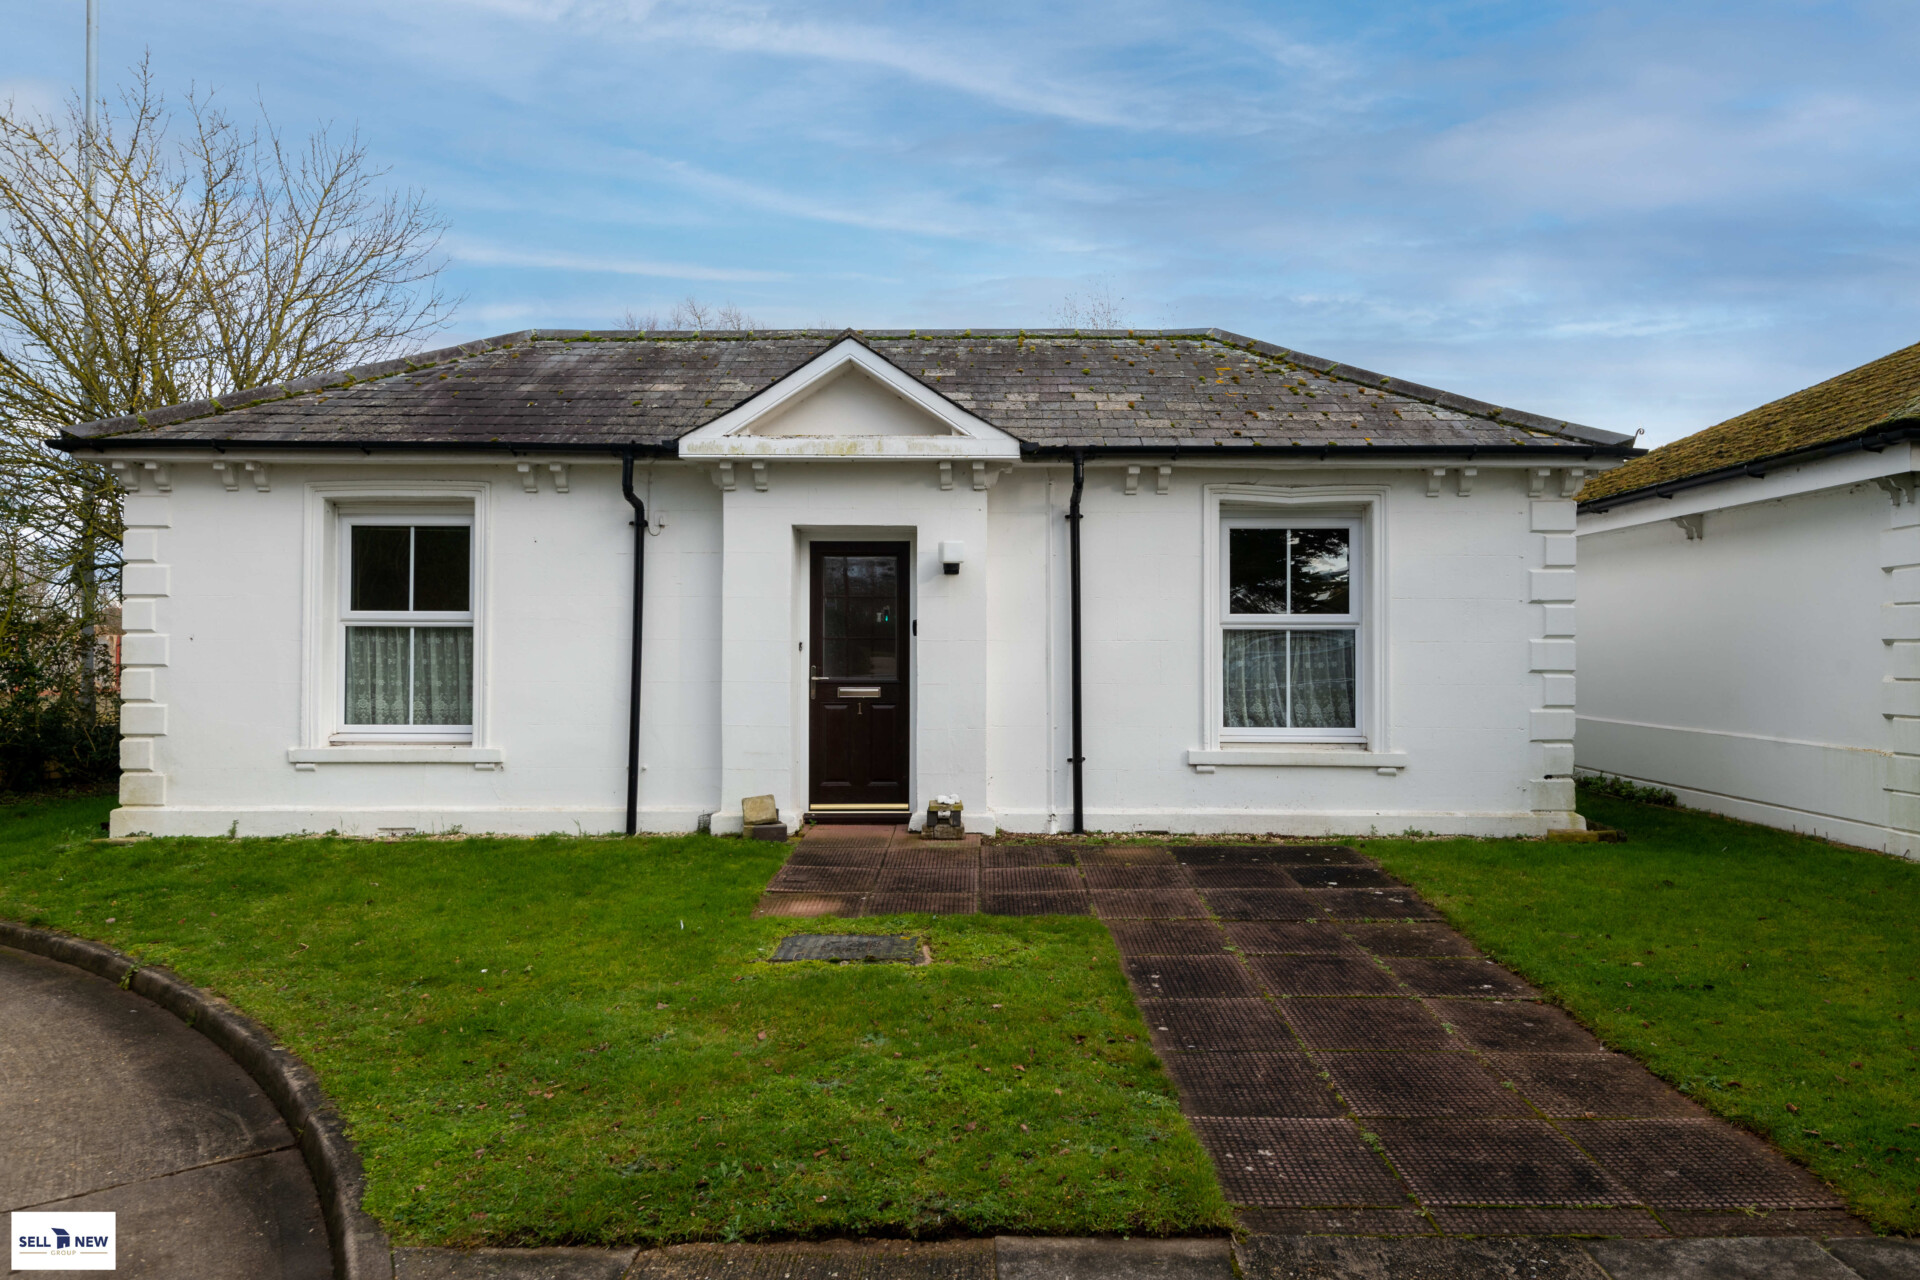 Millfield Lodge 1 Huntingdon Road Huntingdon – Two bedroom detached bungalow